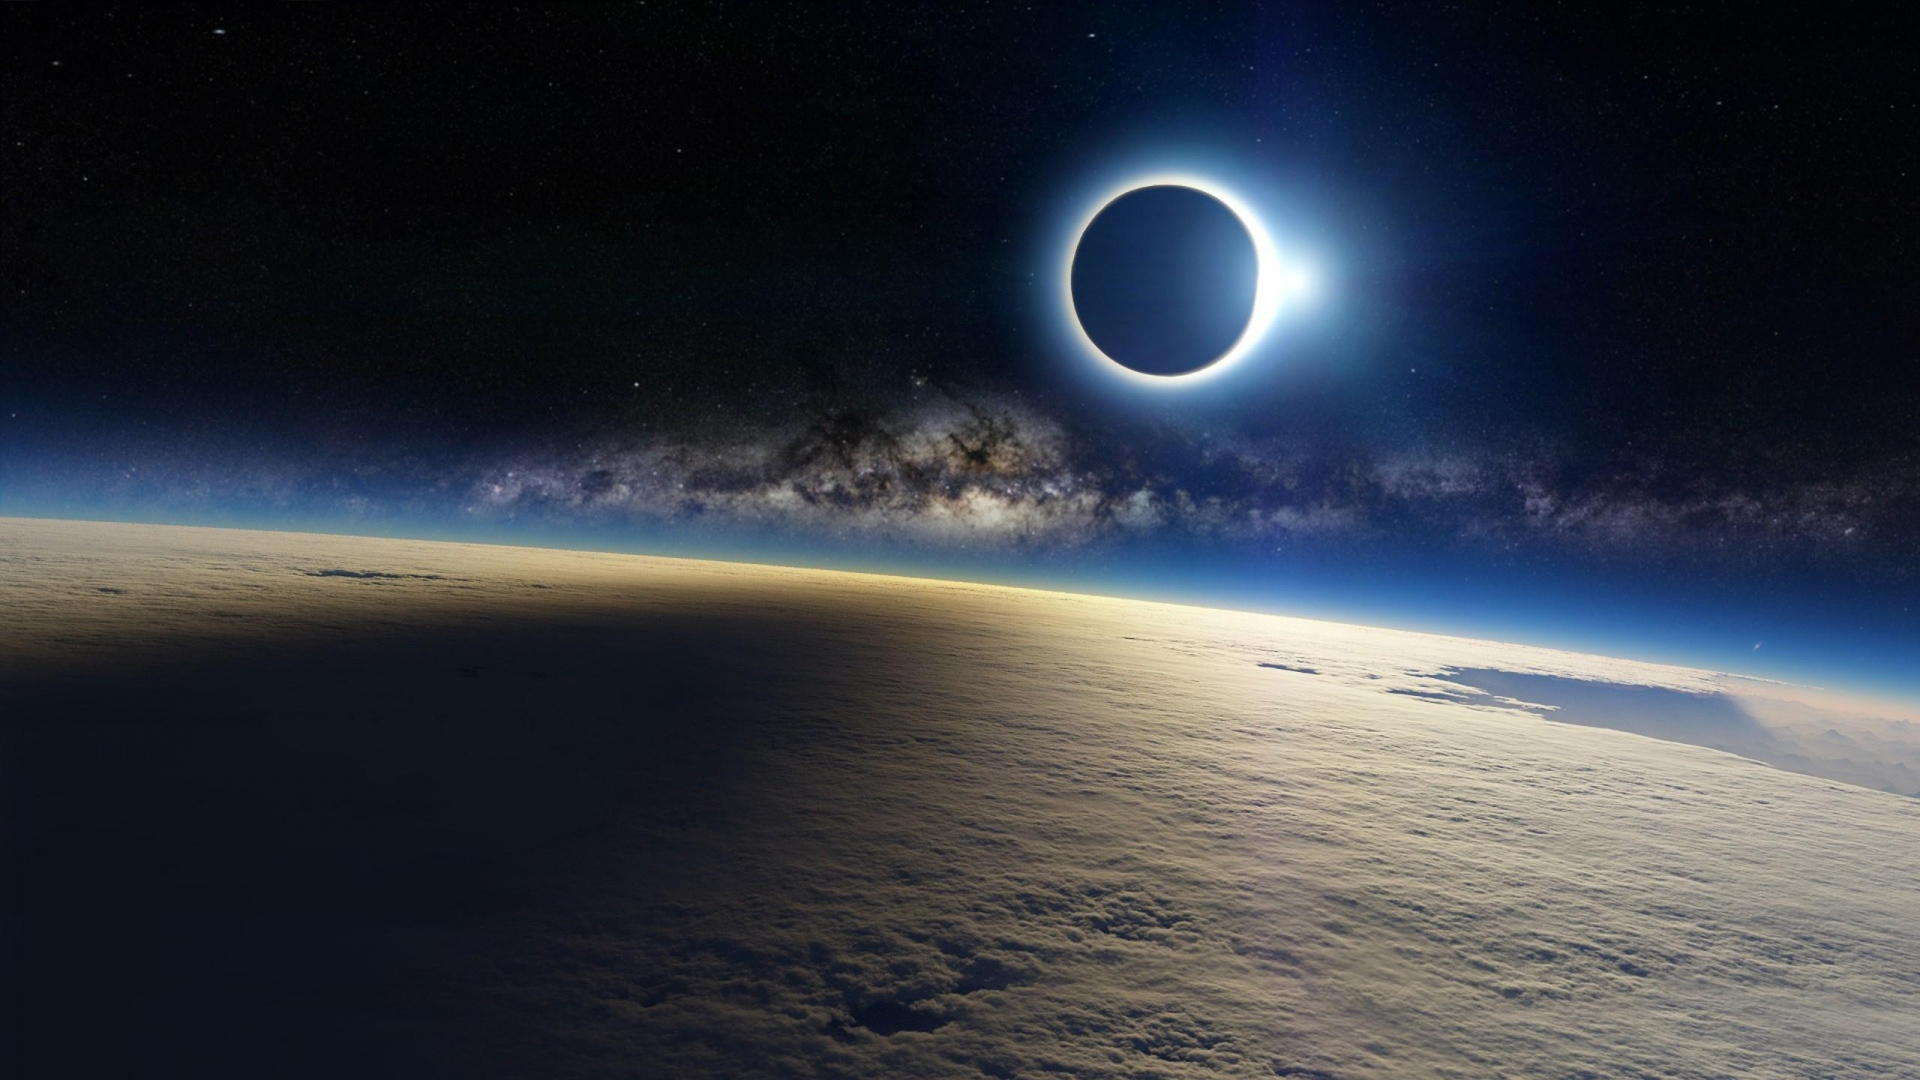 HD Solar Eclipse Moon Shadow On Earth Cloud Wallpaper WallpapersByte 1920x1080